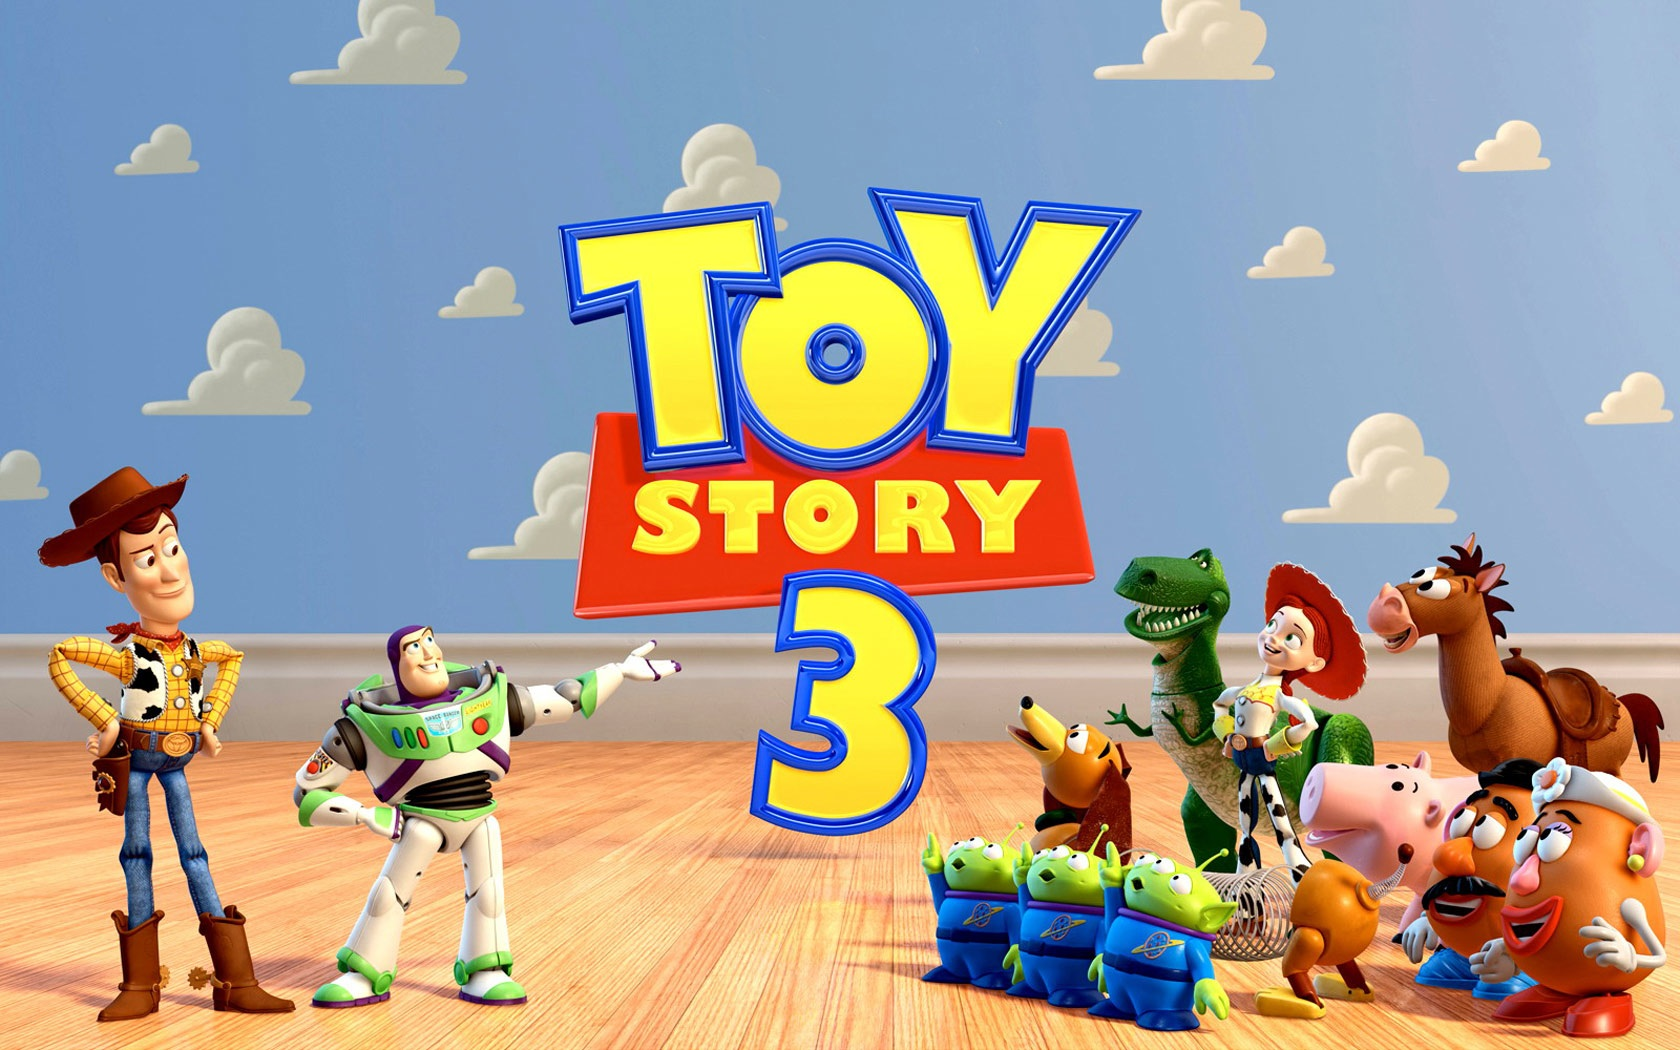 TOY STORY 3 TEASER TRAILER 2 The Peoples Movies